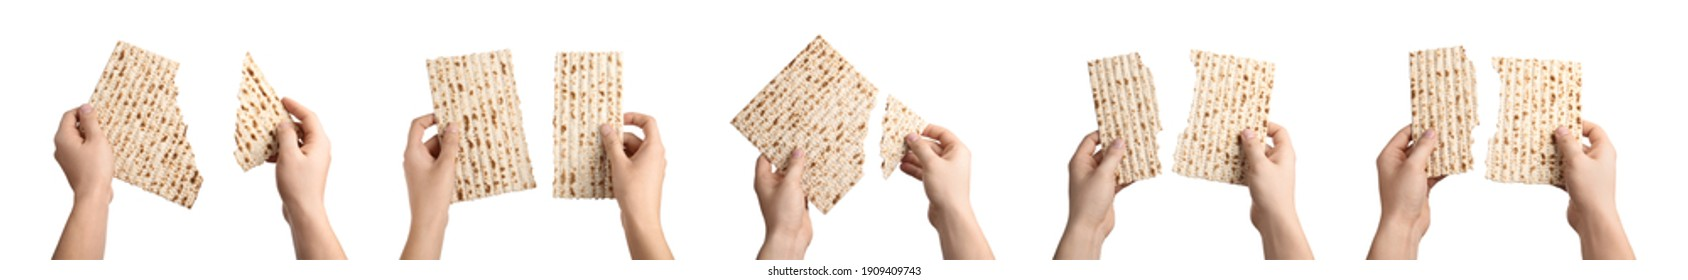 Collage with photos of people holding matzos on white background, closeup. Pesach (Passover) celebration